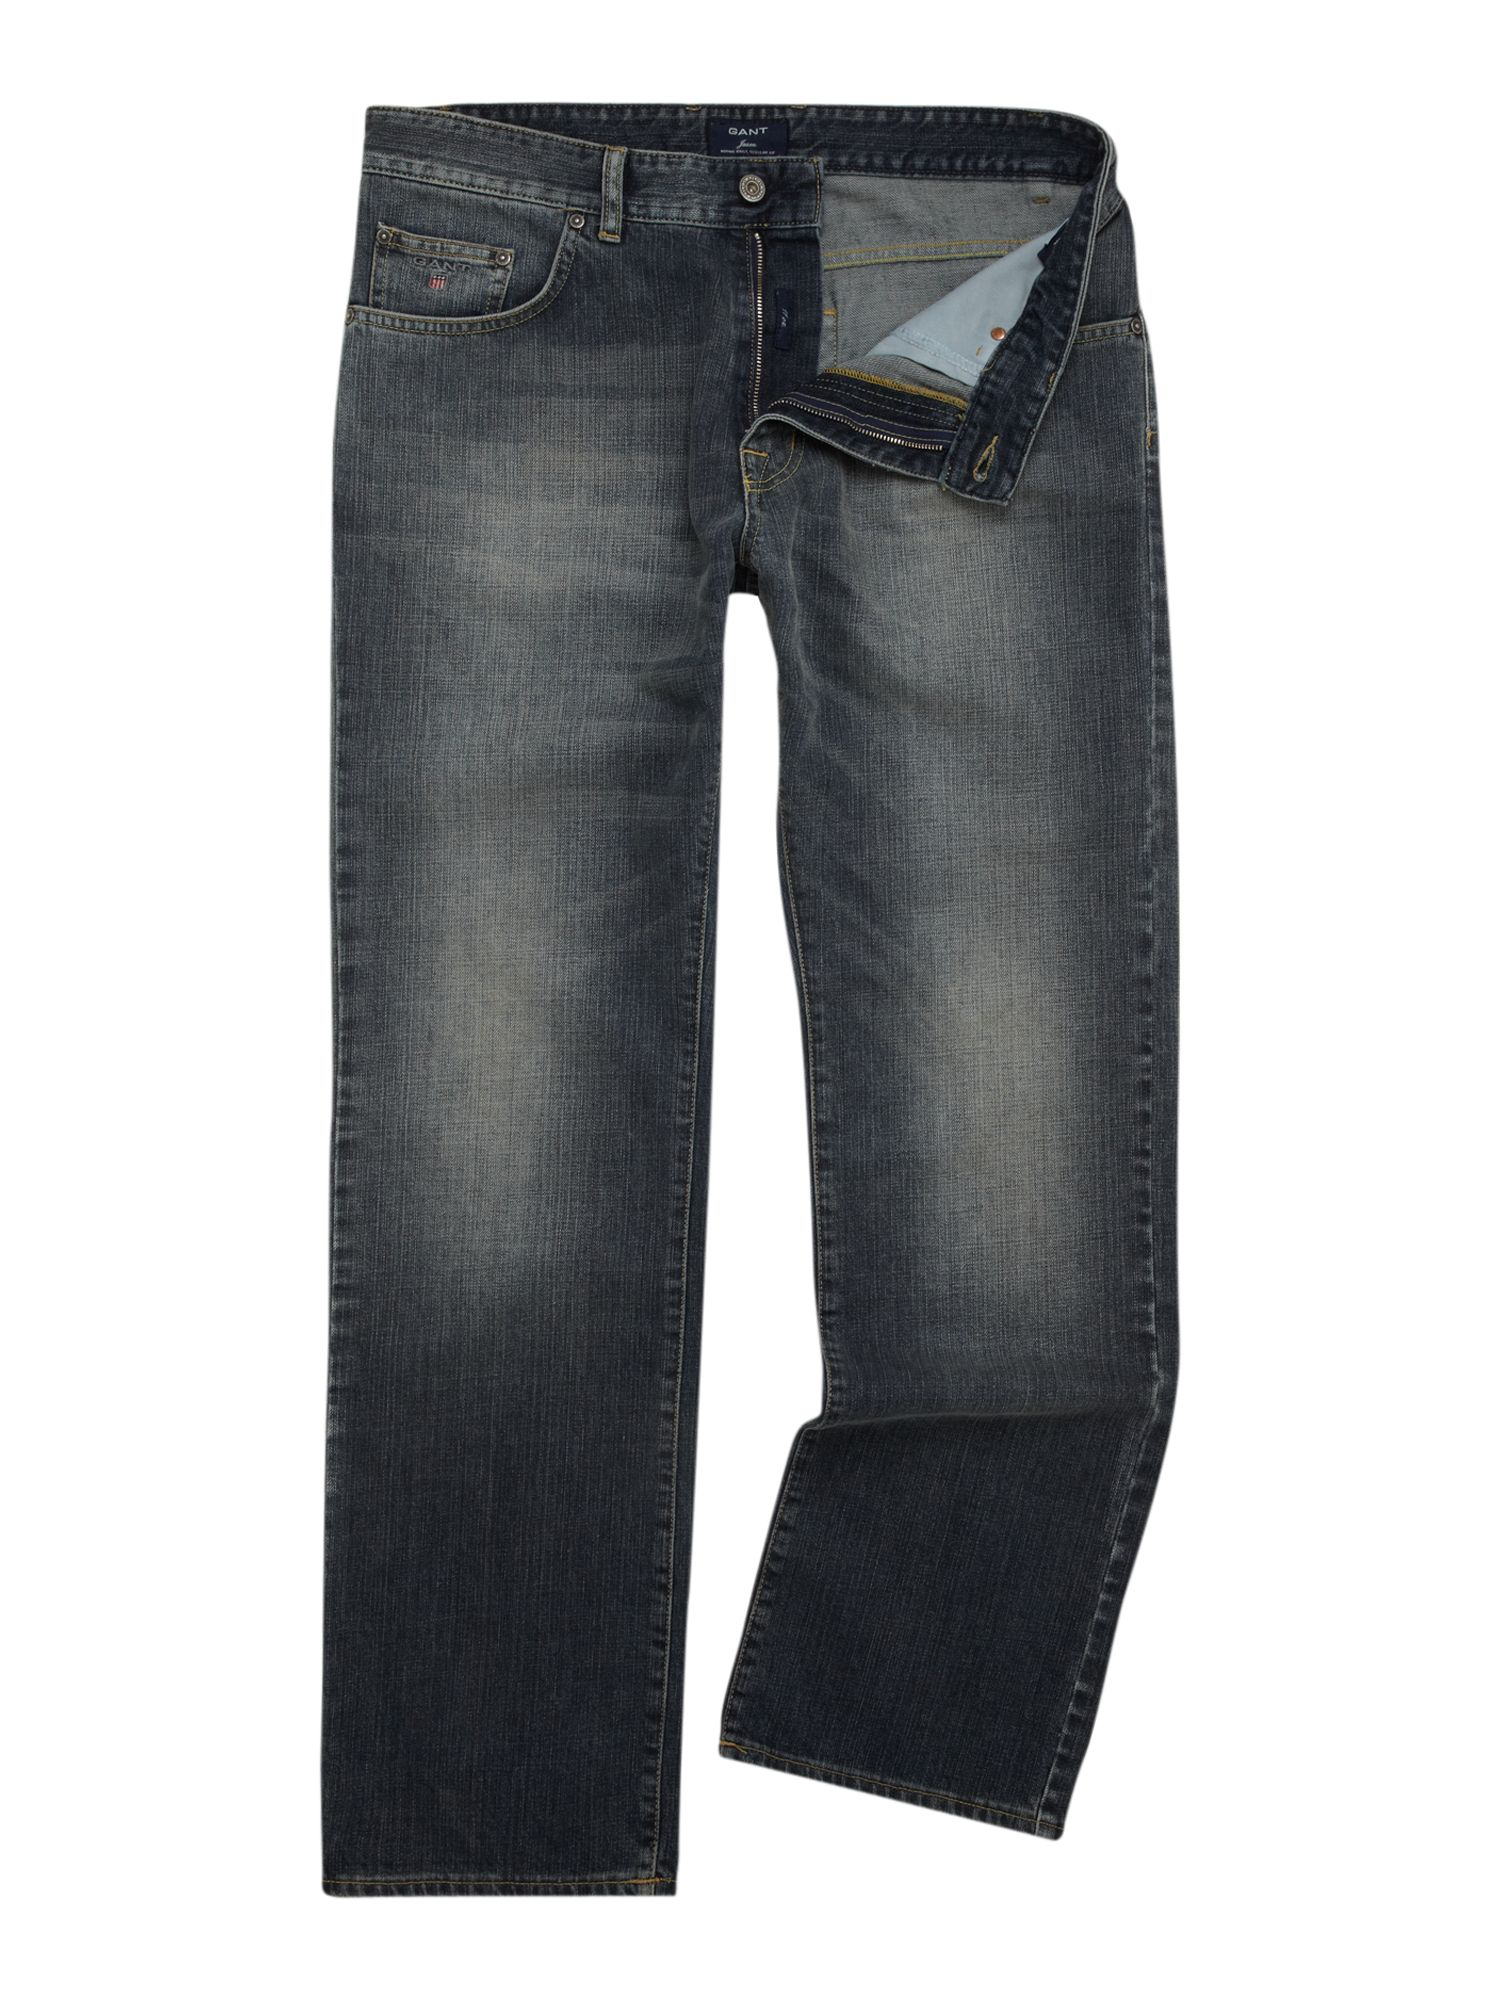 Slim fit long island jeans